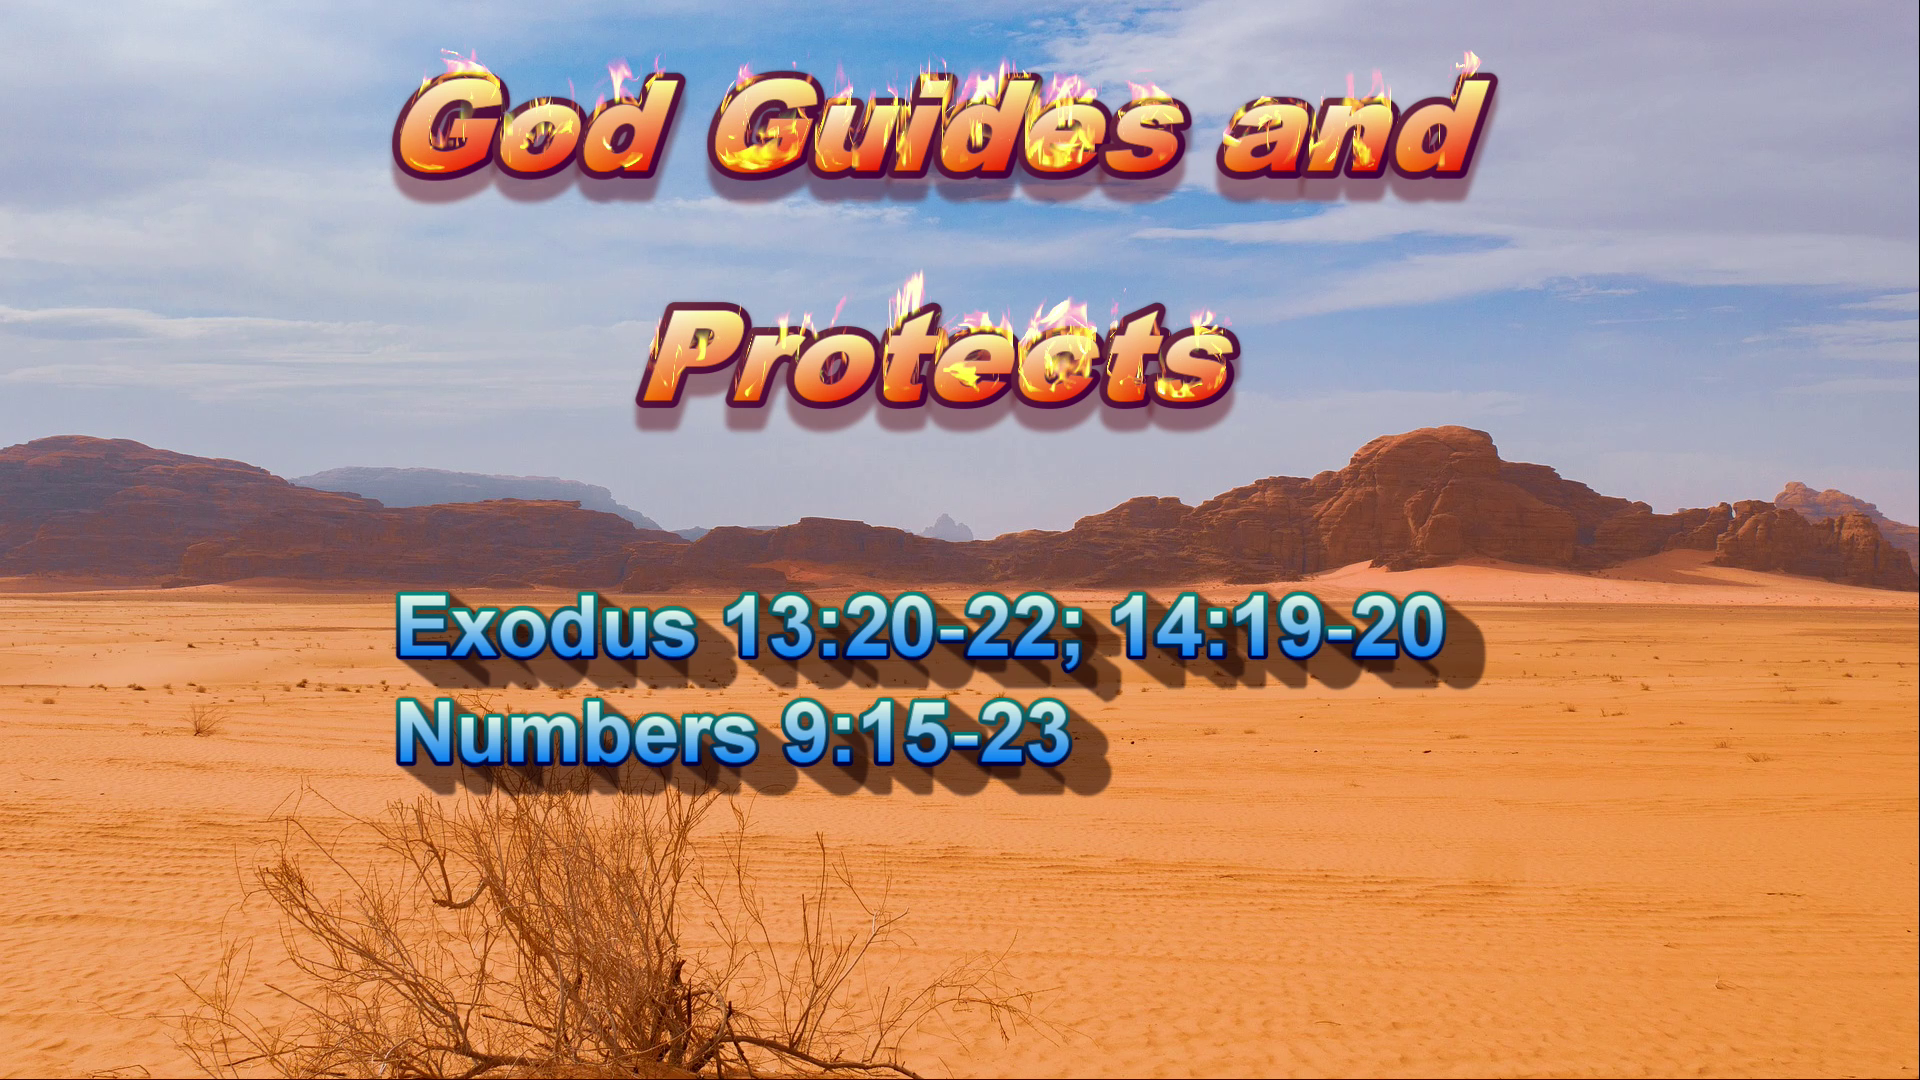 God Guides and Protects Image